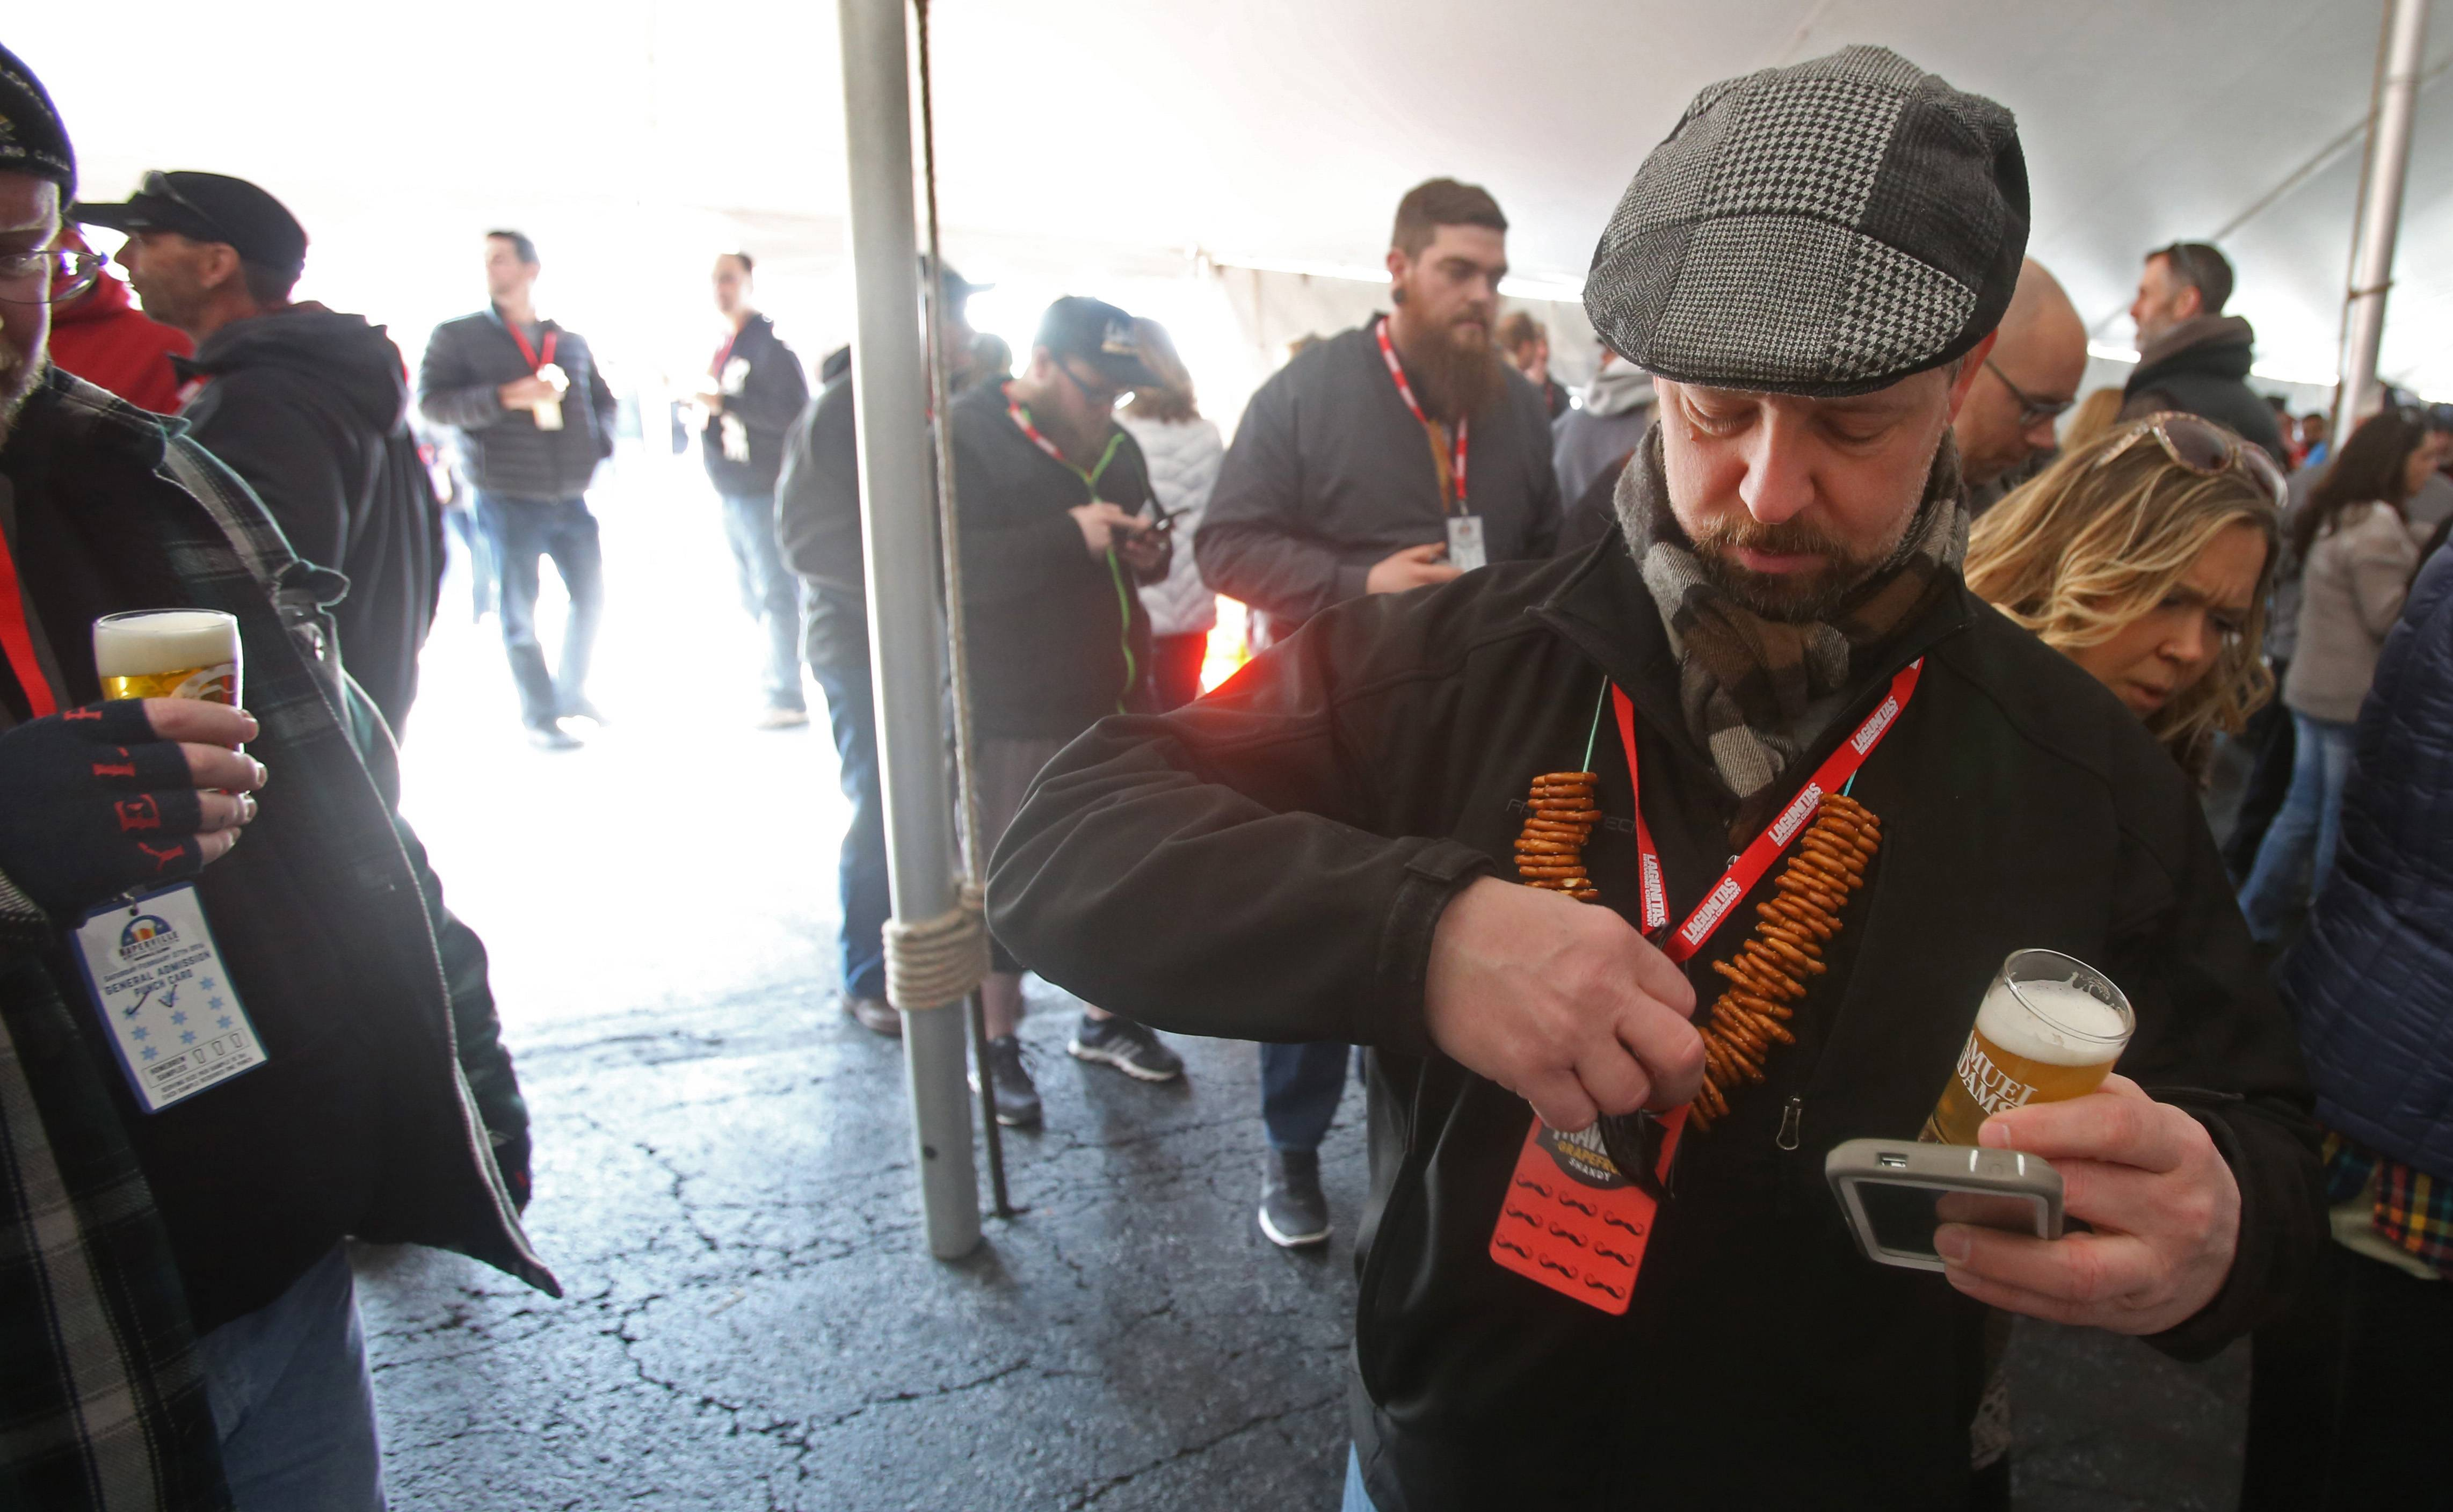 Matt Molitor of Bolingbrook prepares to enjoy a craft beer during the third annual Naperville Winter Ale Fest at Frontier Park.